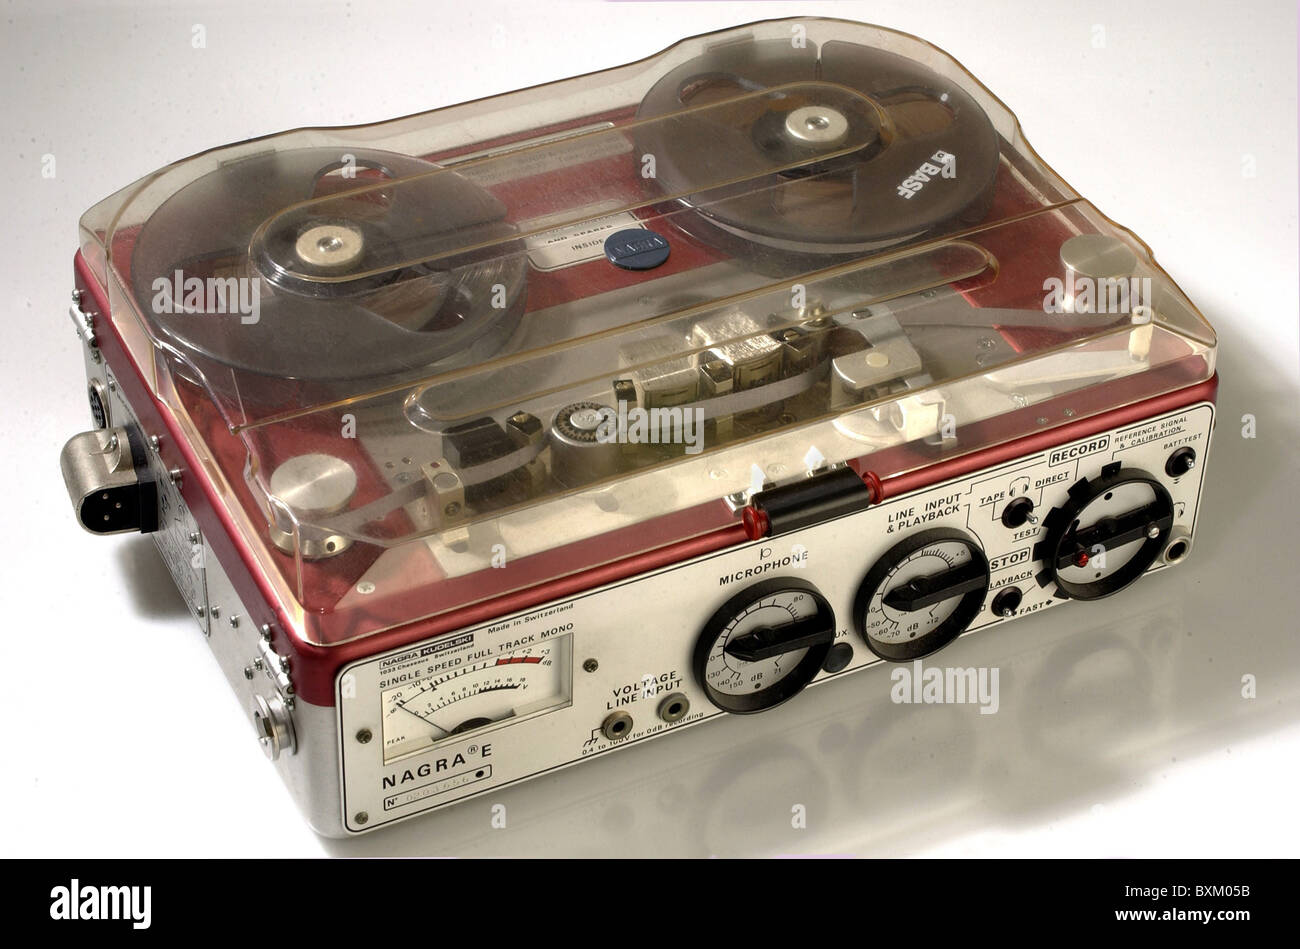 Los Tapes Stock Photos & Los Tapes Stock Images - Alamy